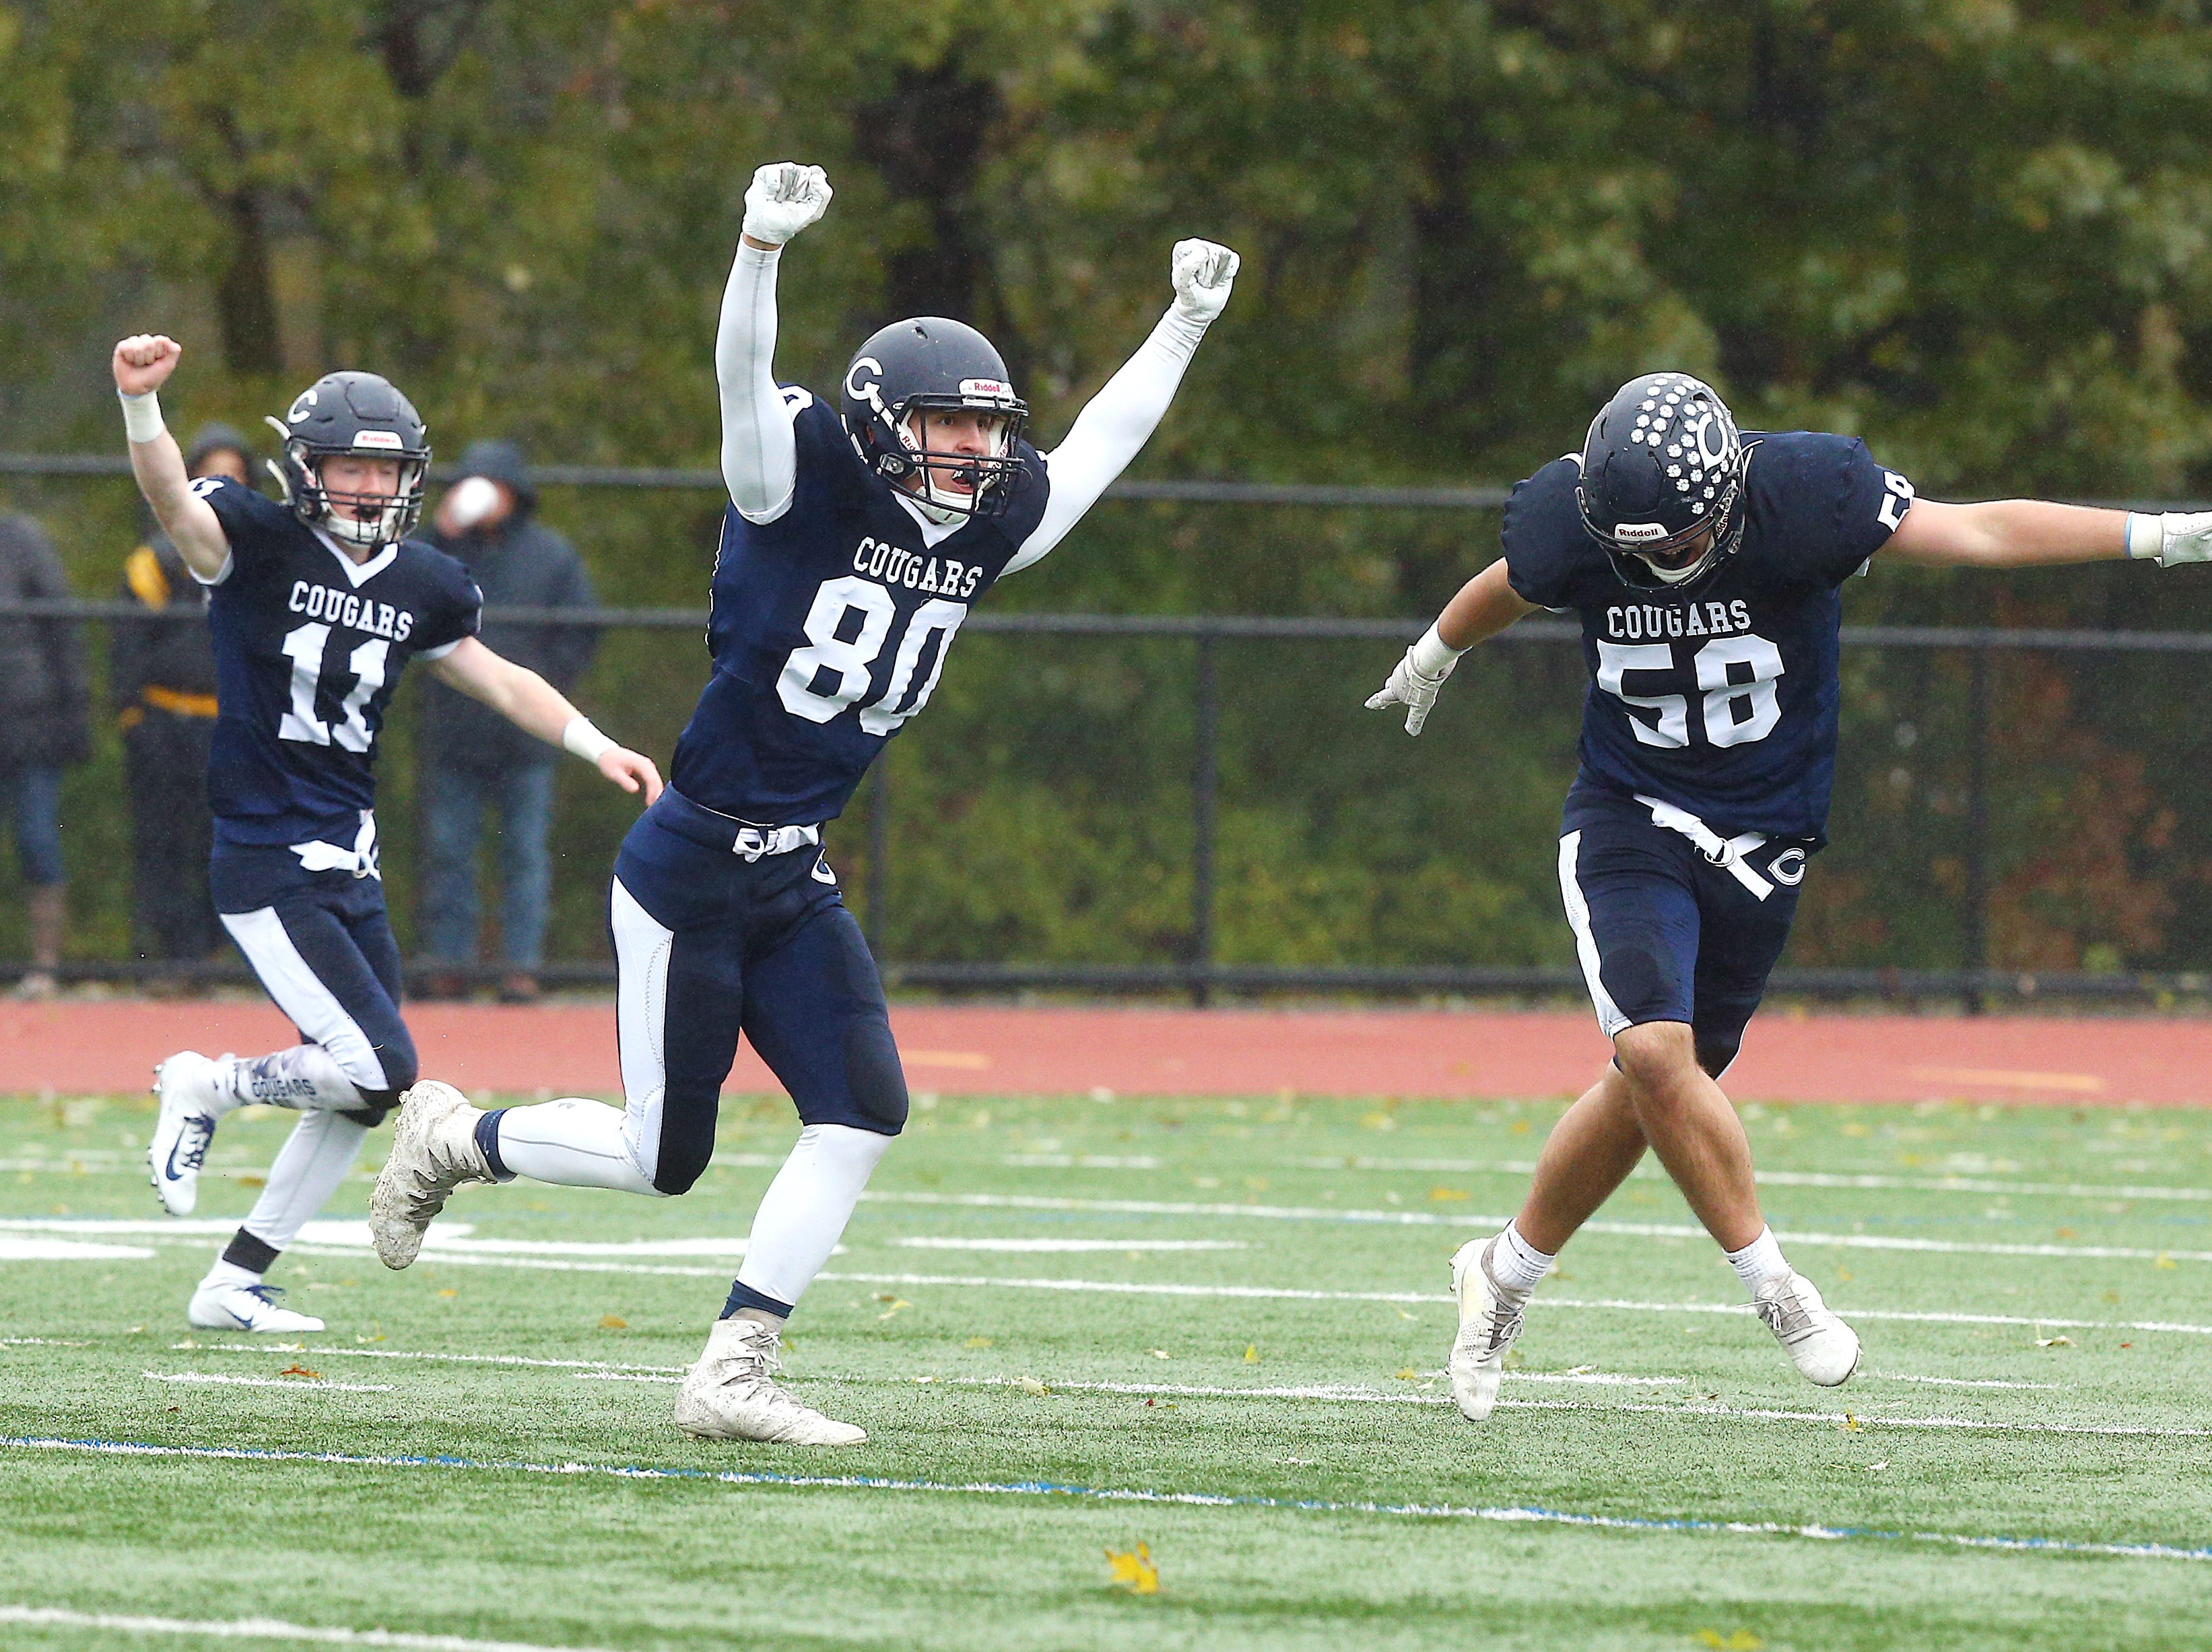 Chatham defense celebrates stopping Hanover Park on 4th and short during their Saturday SFC American White football game. October 27, 2018, Chatham, NJ